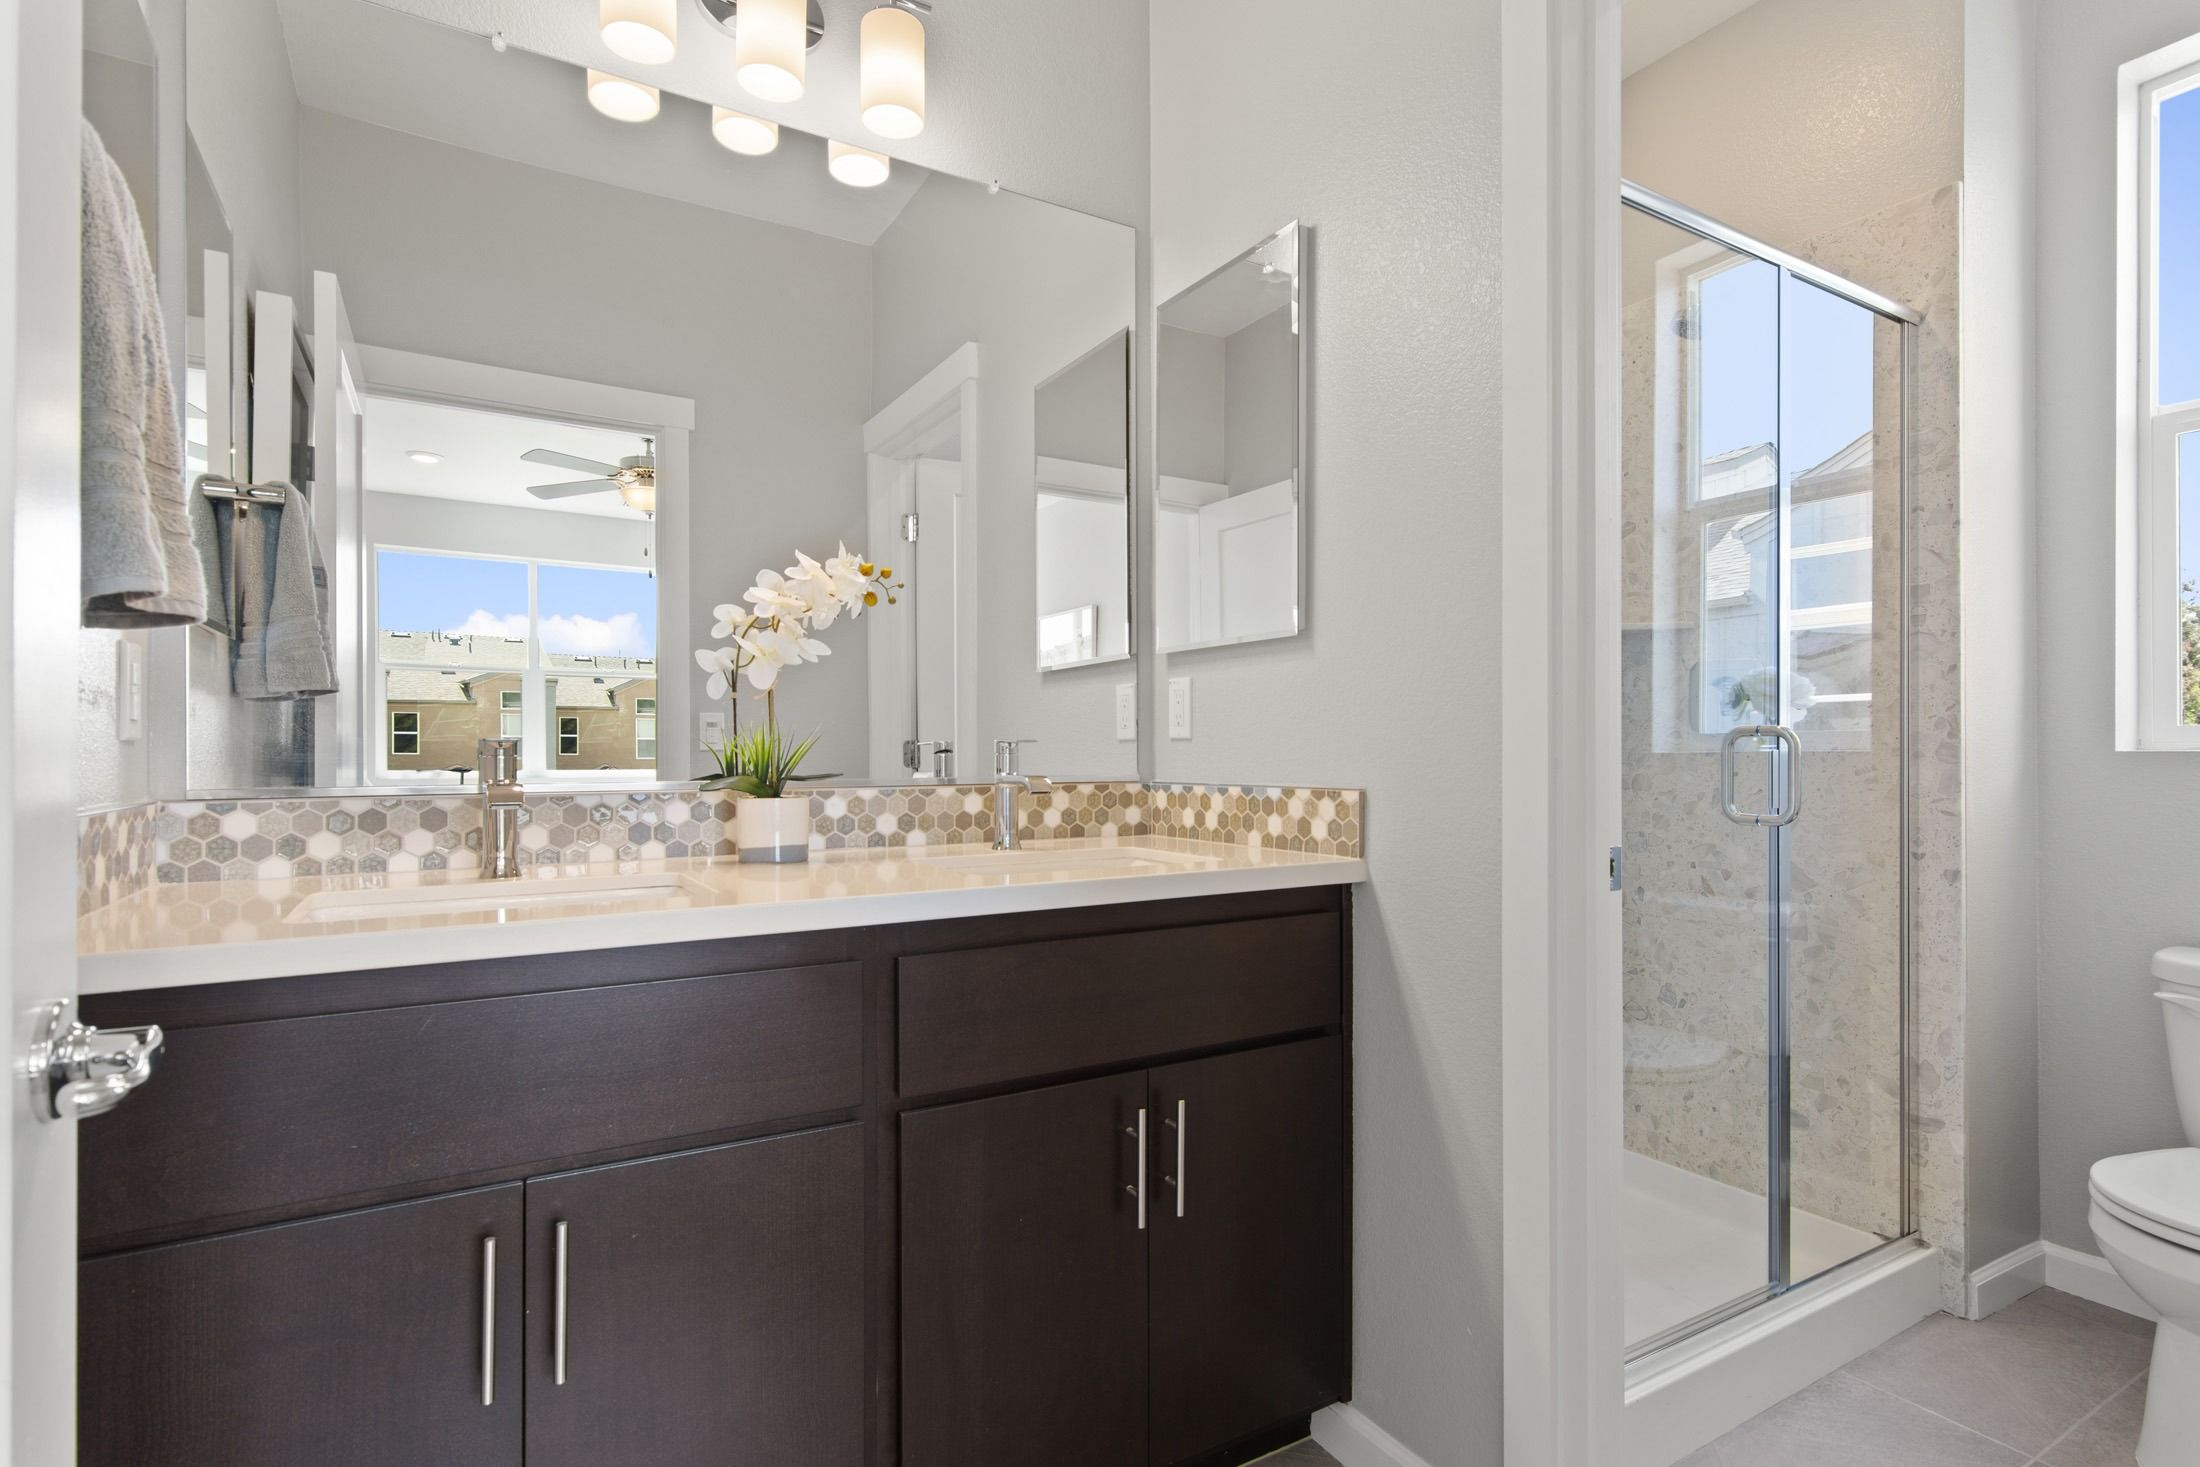 Bathroom featured in the Plan D By Blue Mountain Communities in Santa Rosa, CA